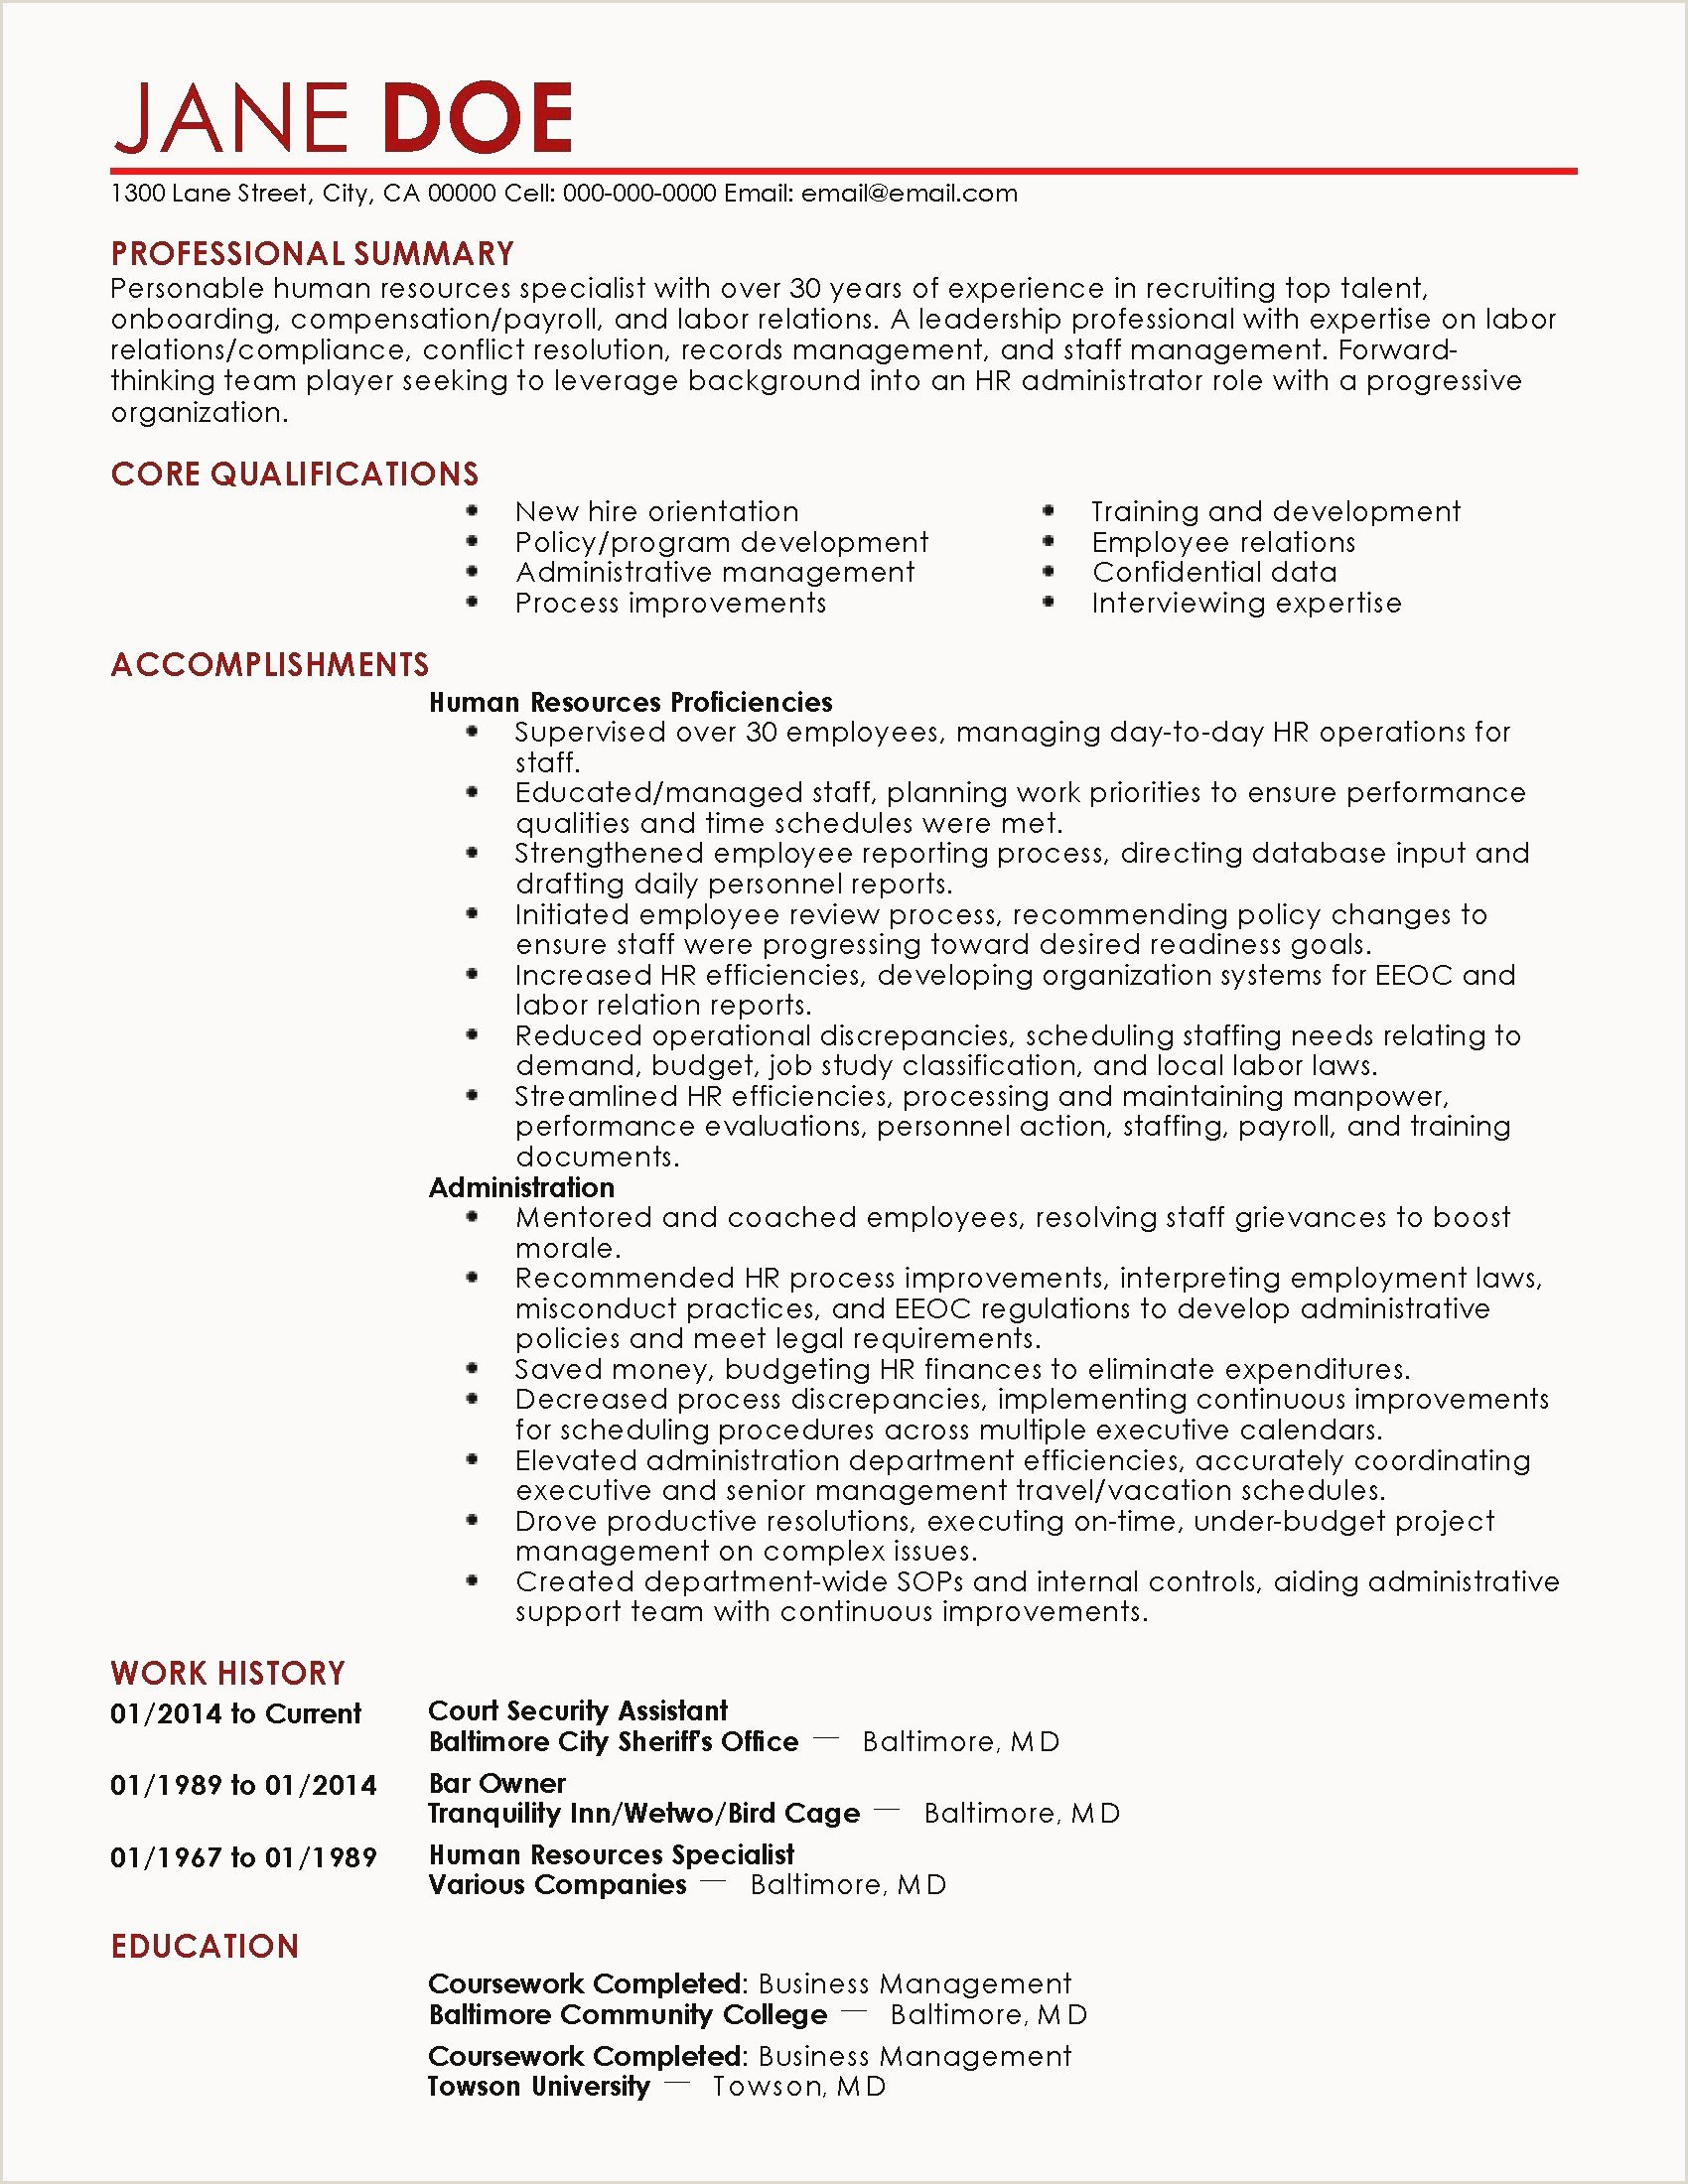 Executive assistant Resume Sample Administrative assistant